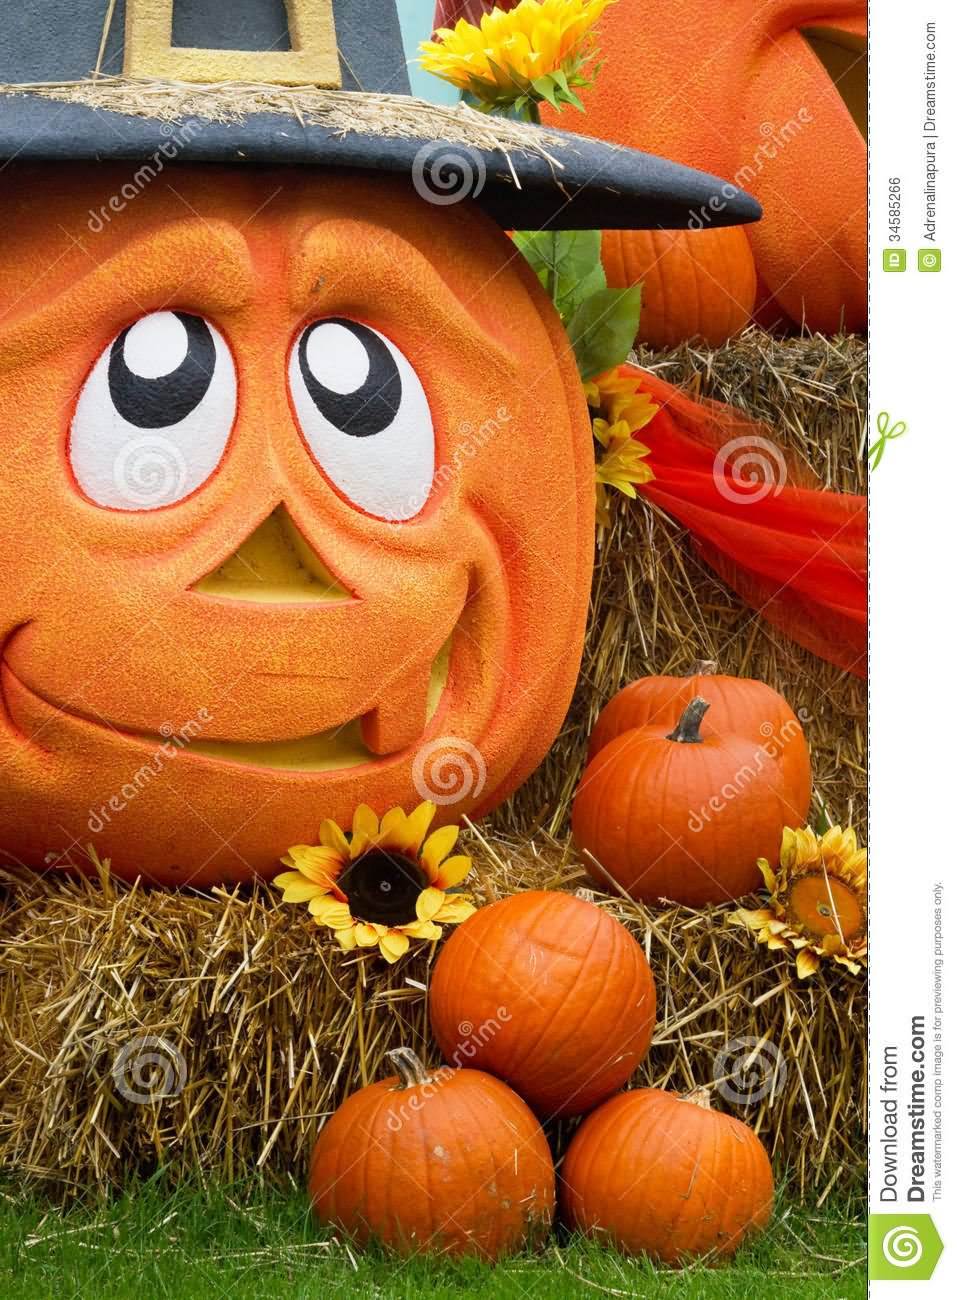 30 most Funny Halloween Pumpkin Pictures And Photos